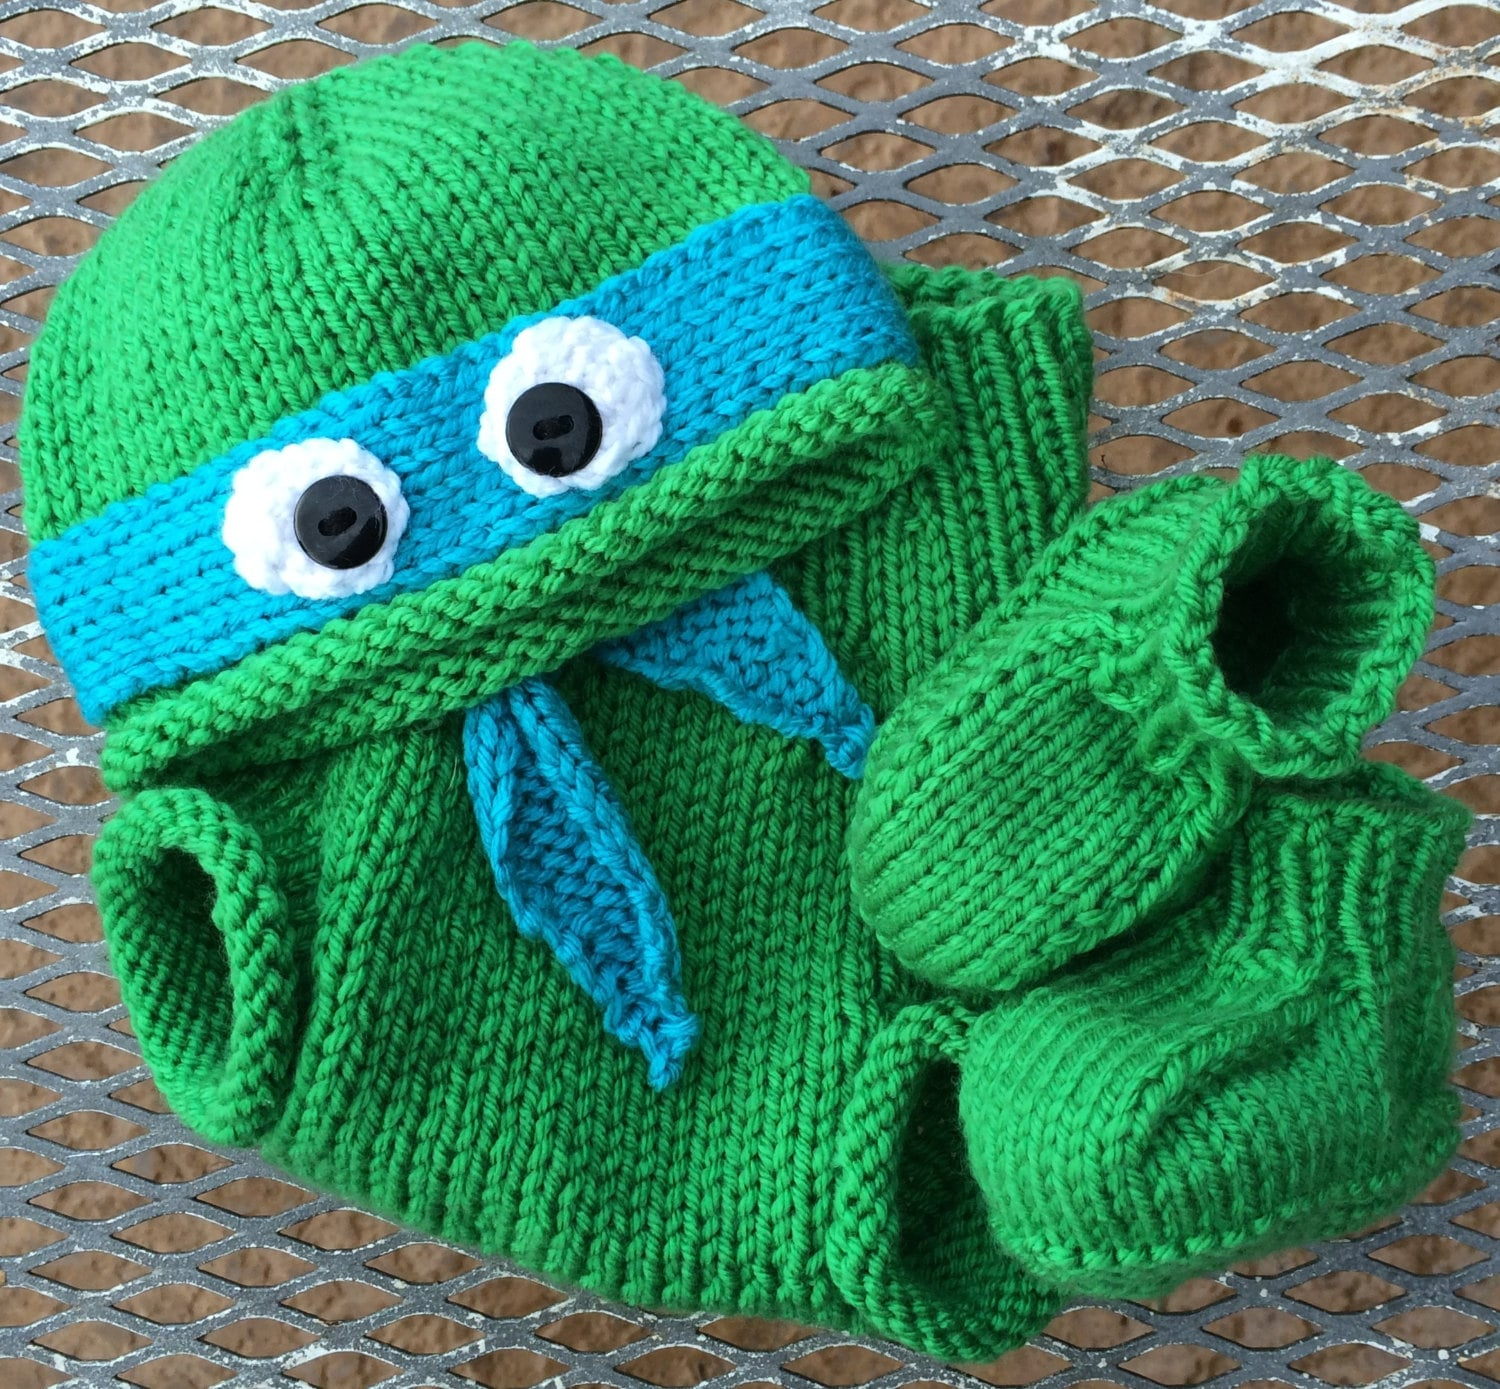 Hand-knit teenage mutant ninja turtle hat with booties and